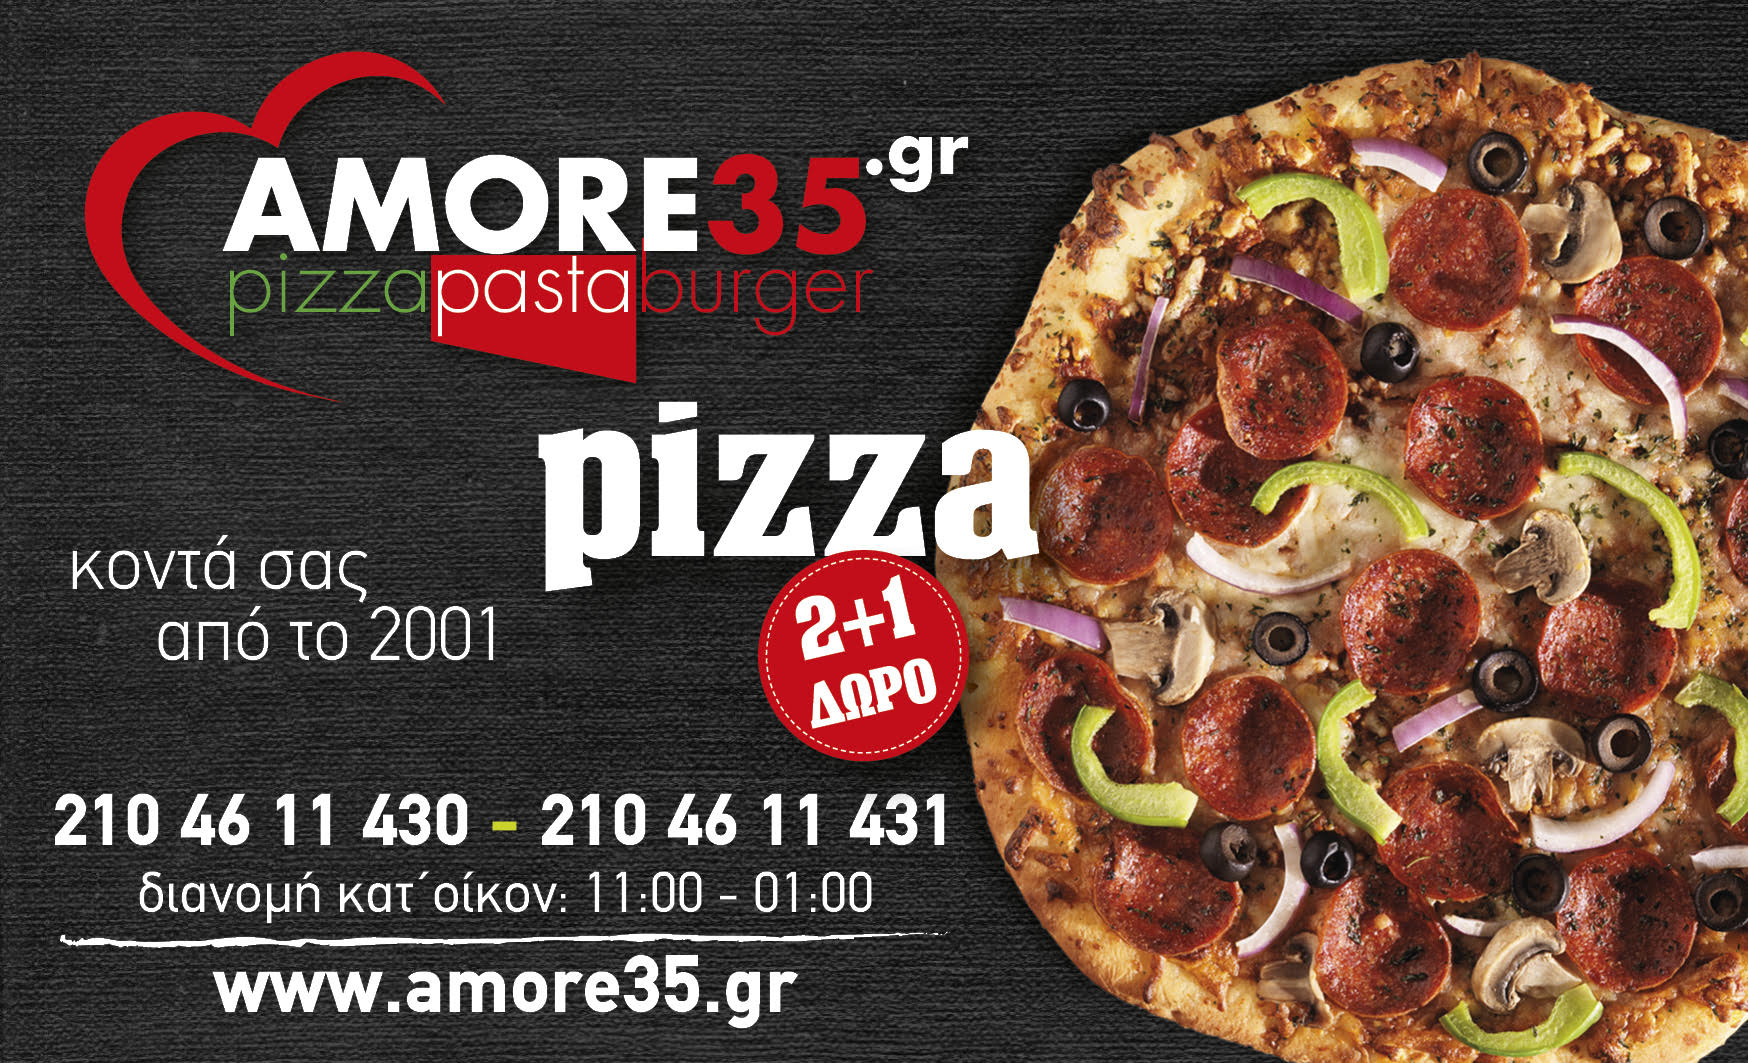 Amore 35 pizza